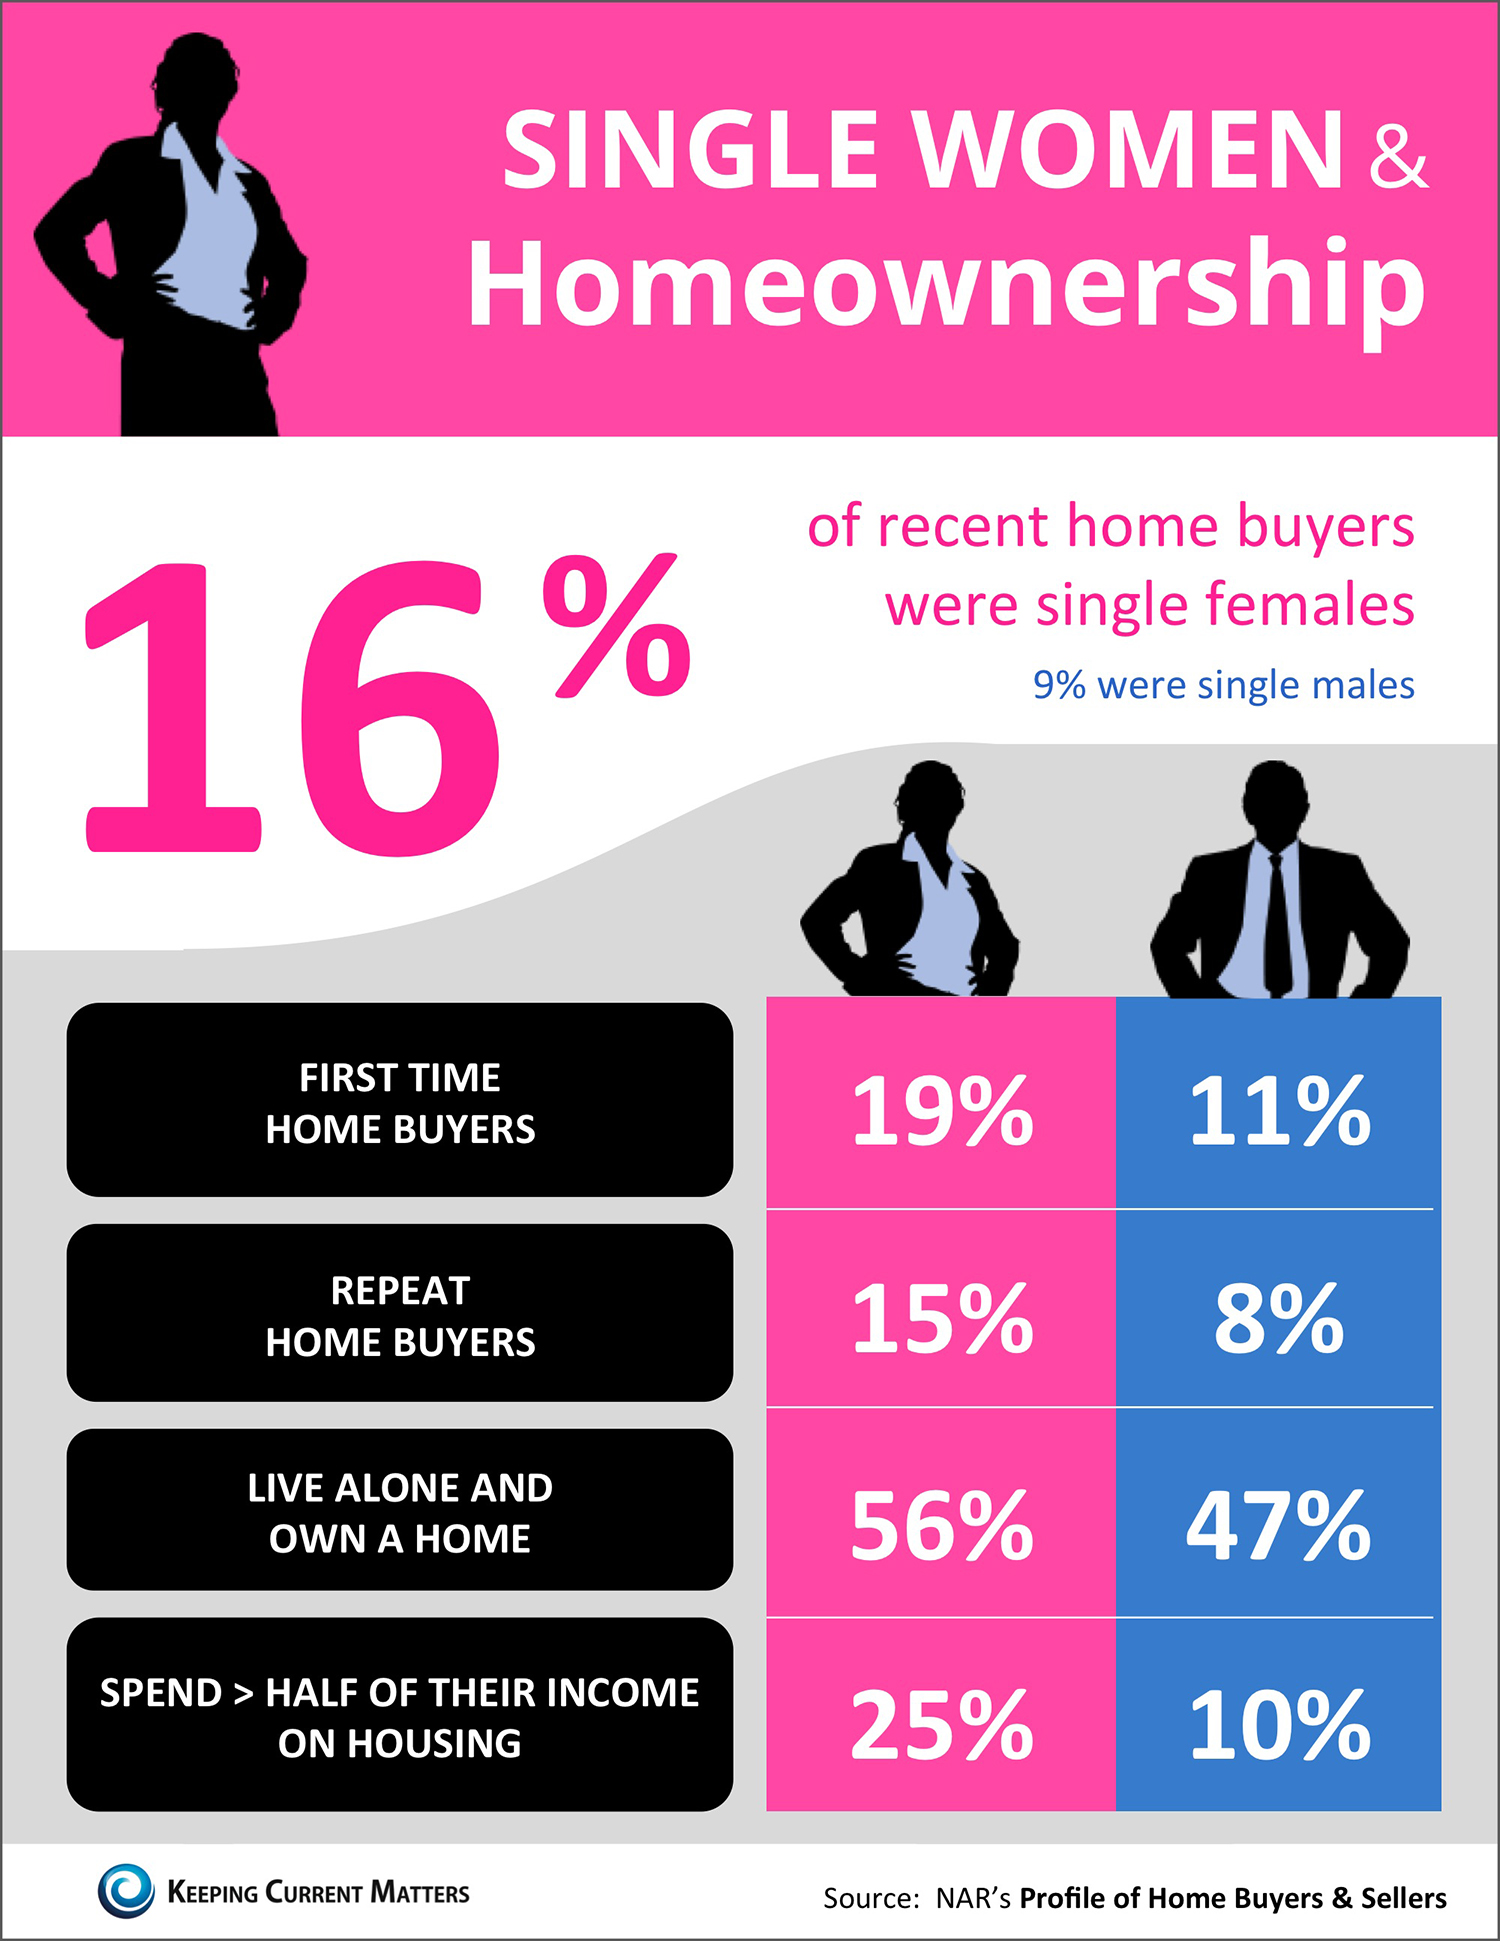 Single Women & Homeownership [INFOGRAPHIC] | Keeping Current Matters